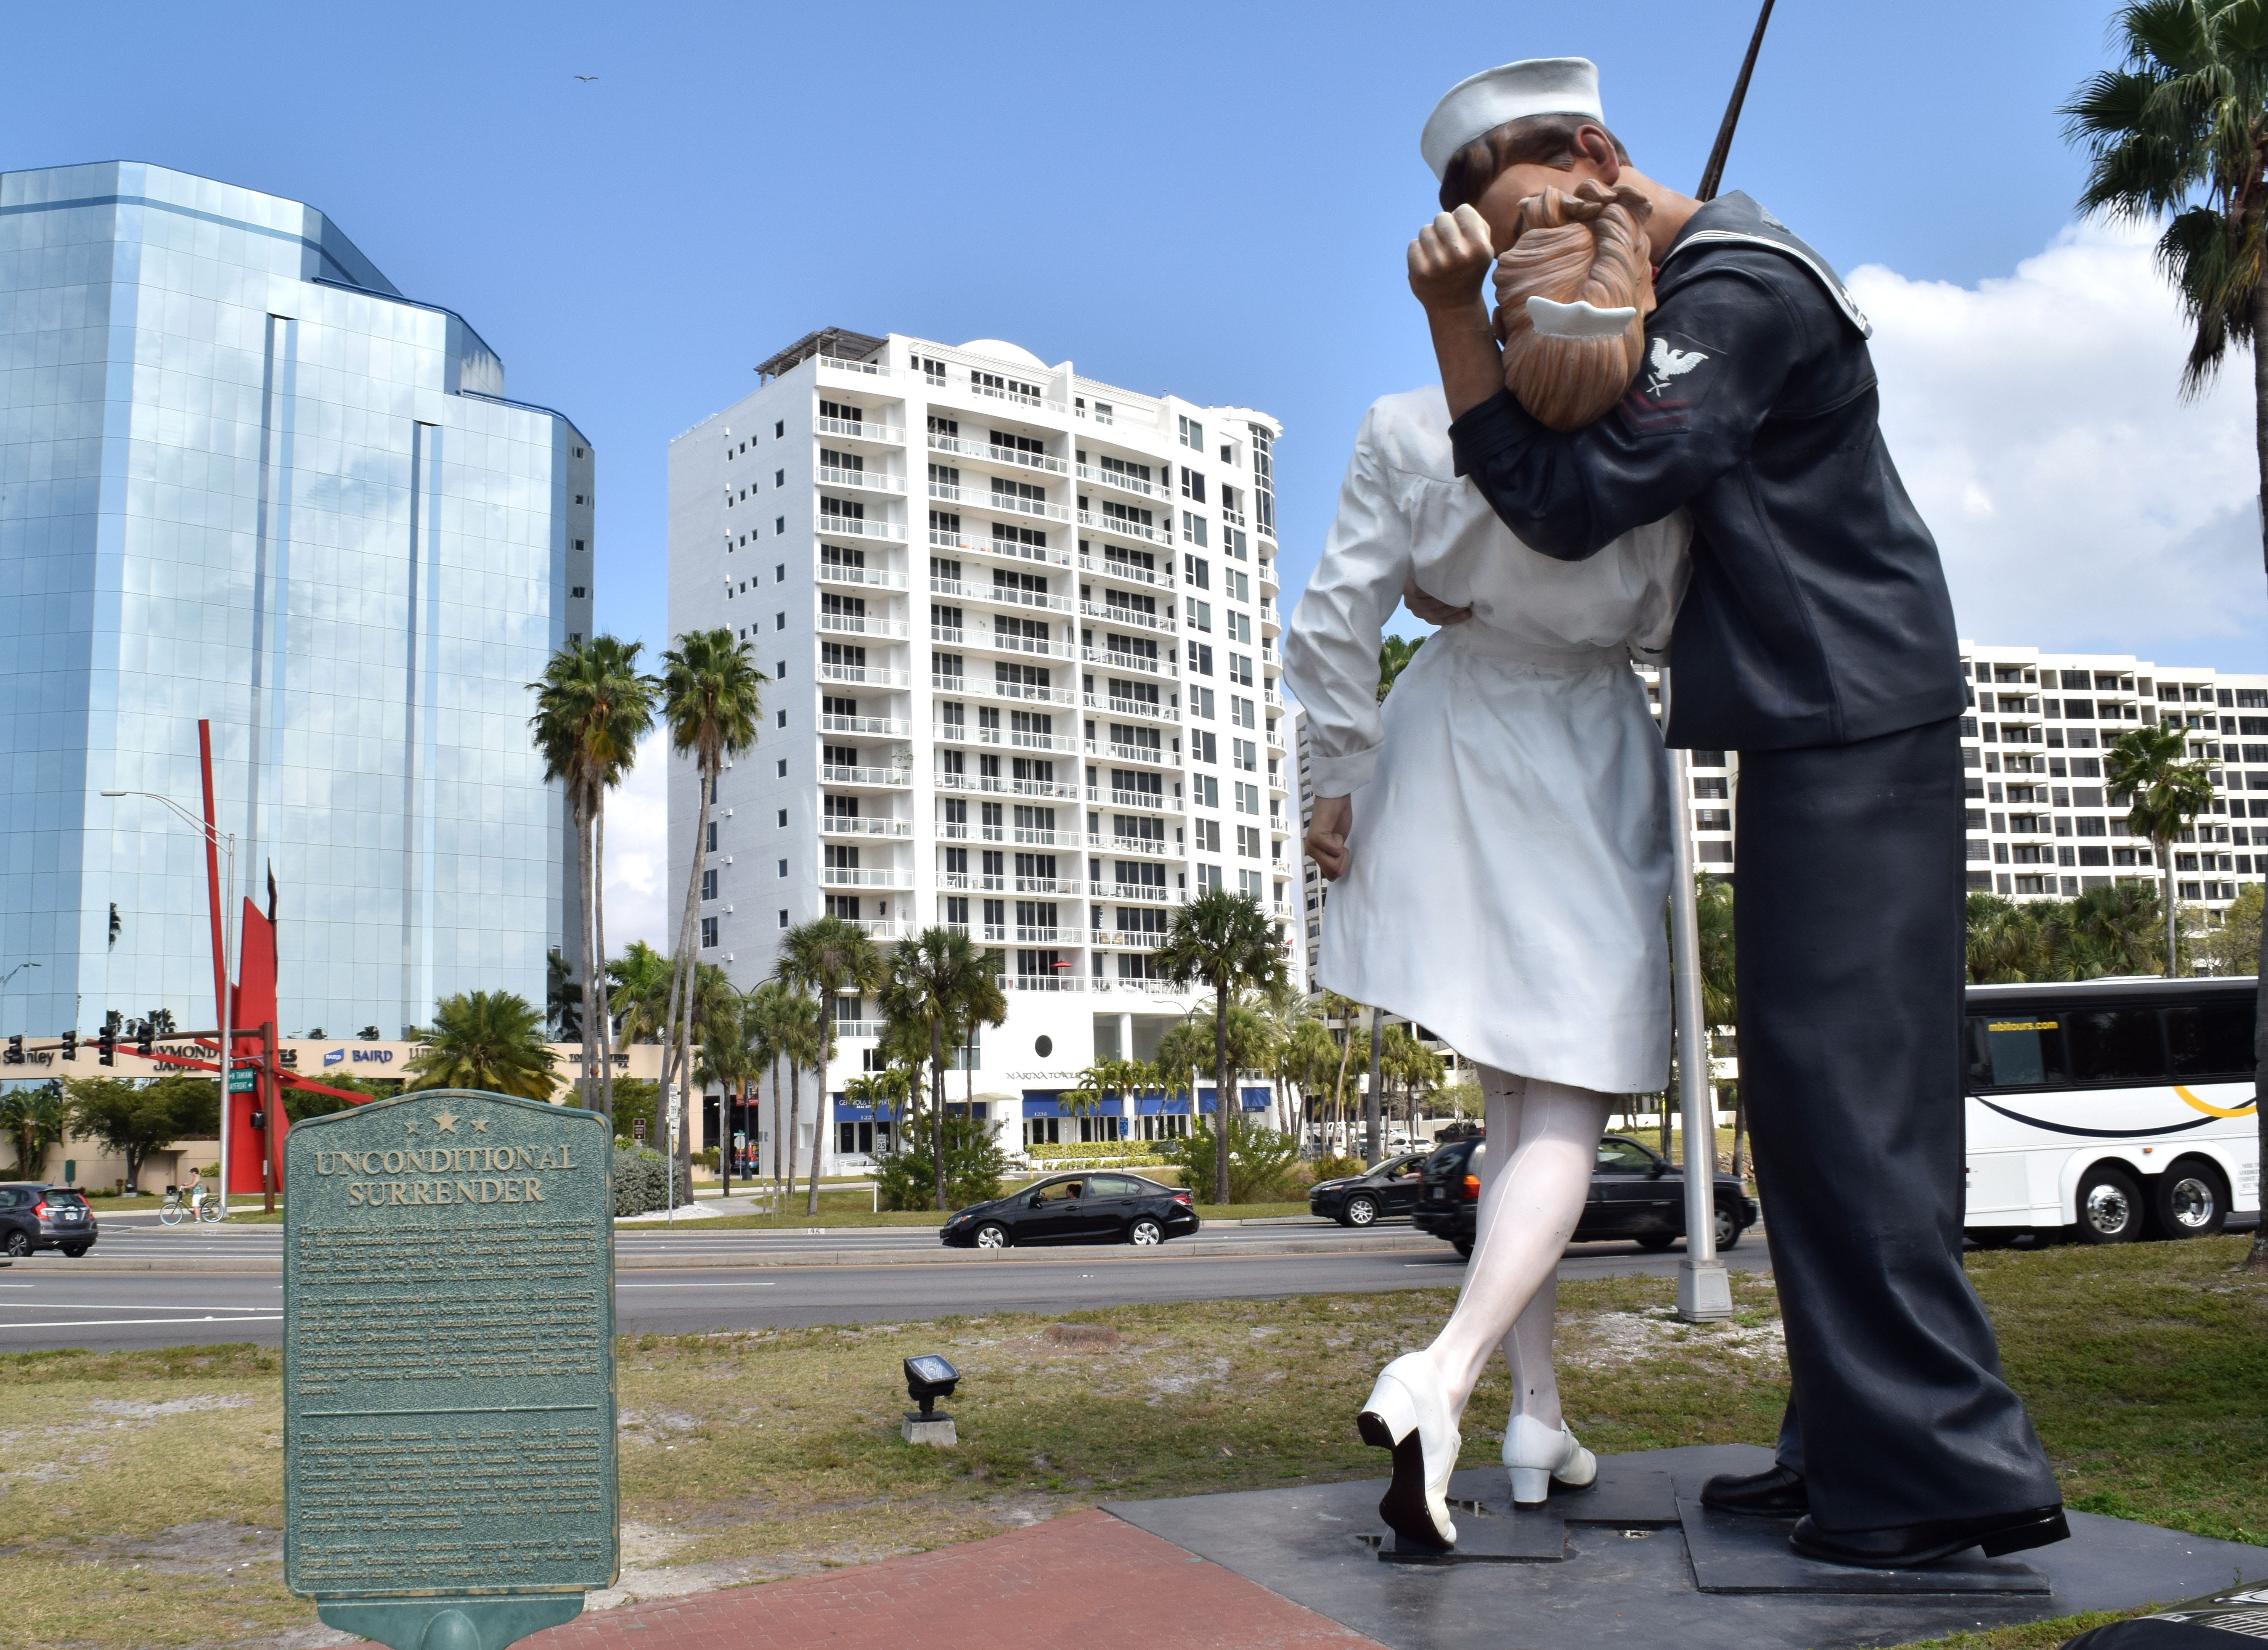 Sarasota's Unconditional Surrender statue to remain on the Bayfront